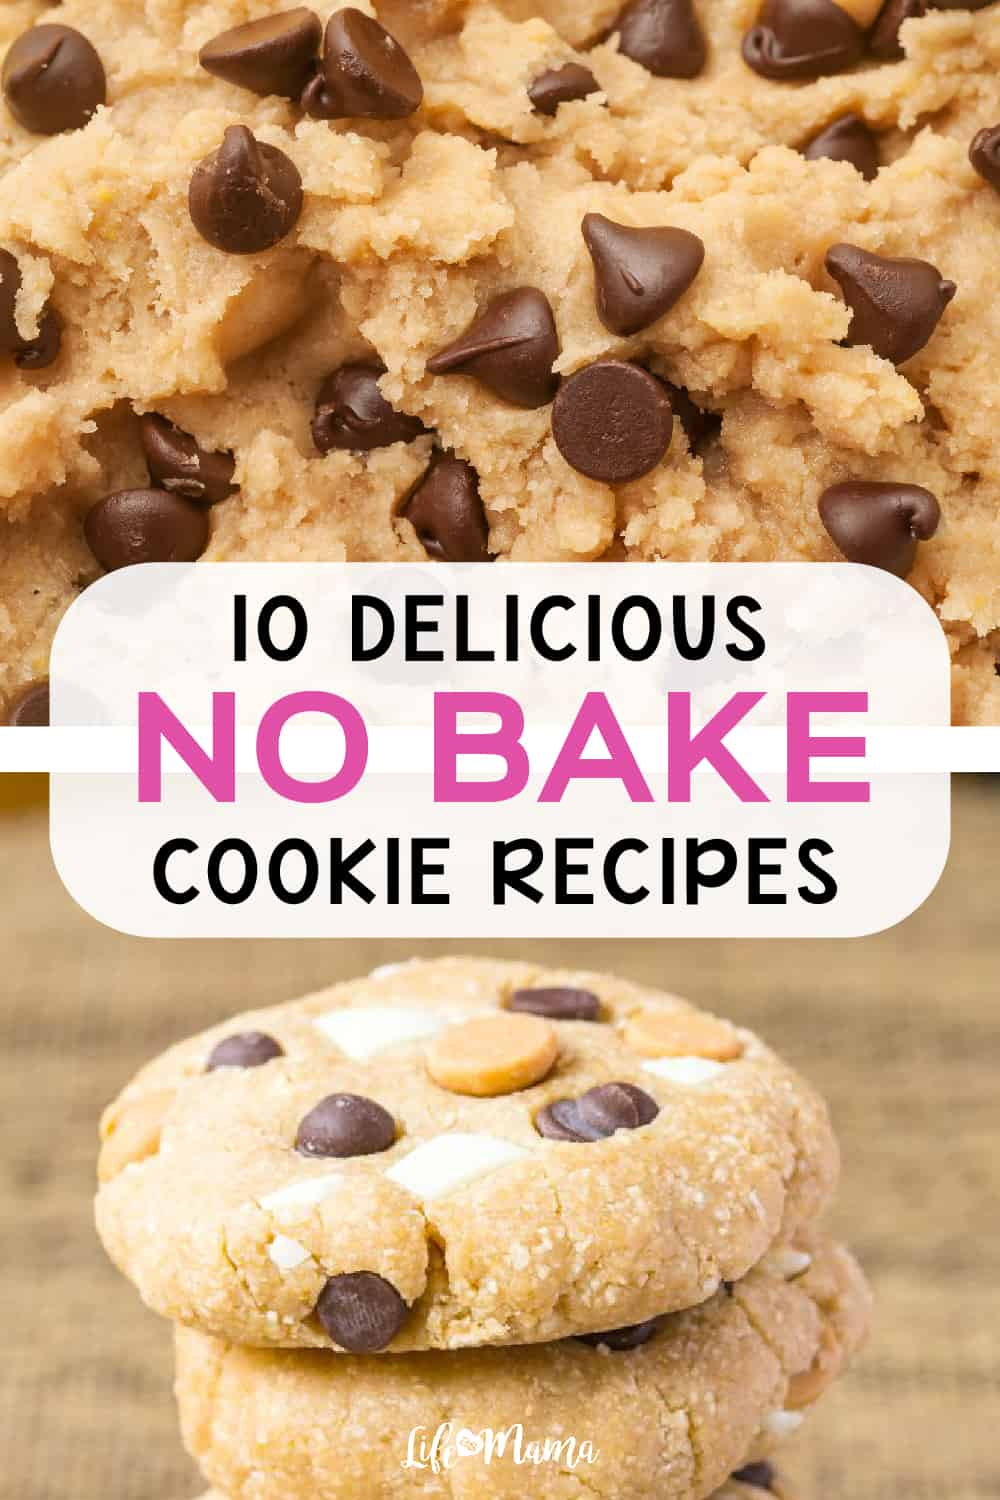 10 Delicious No Bake Cookie Recipes